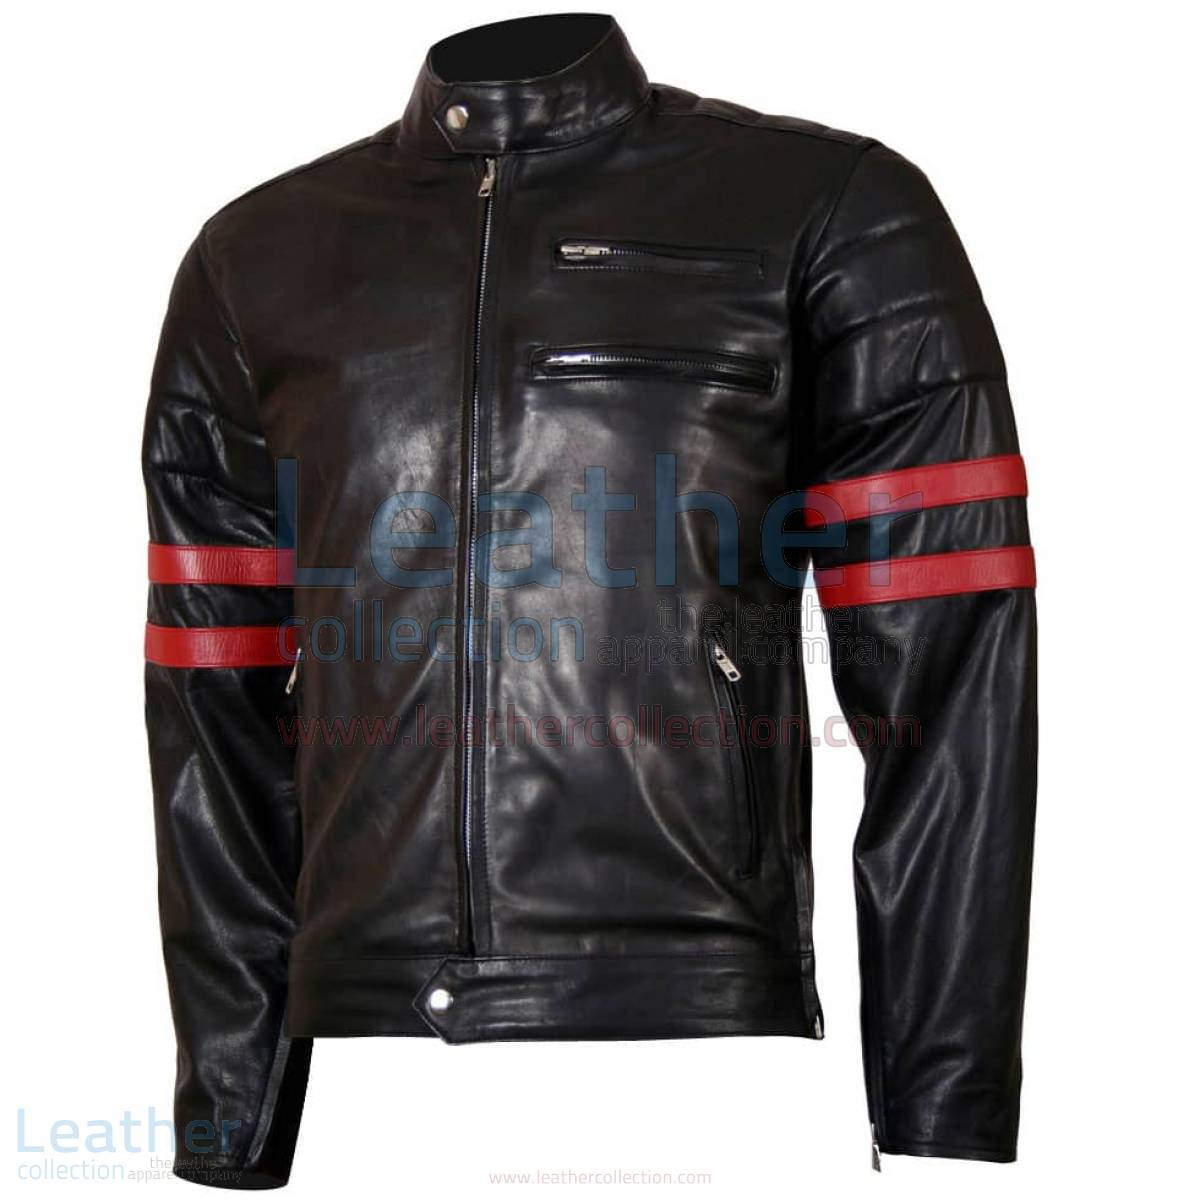 red and black motorcycle jacket